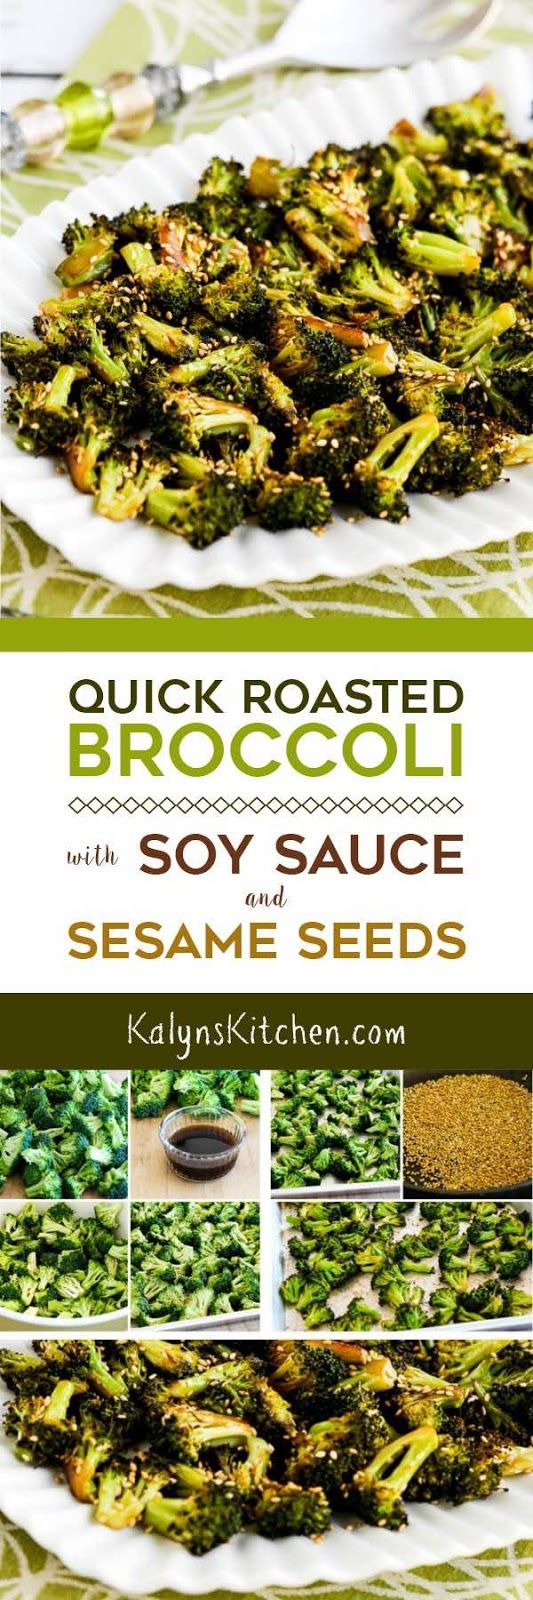 Unless you're a confirmed broccoli avoider, you MUST TRY this Quick Roasted Broccoli with Soy Sauce and Sesame Seeds; this recipe is amazing. And it's low-carb, dairy-free, gluten-free, vegan, and South Beach Diet friendly and if you sub the soy sauce for coconut aminos it can easily be Paleo or Whole 30, so you can make this for anyone. [found on KalynsKitchen.com]